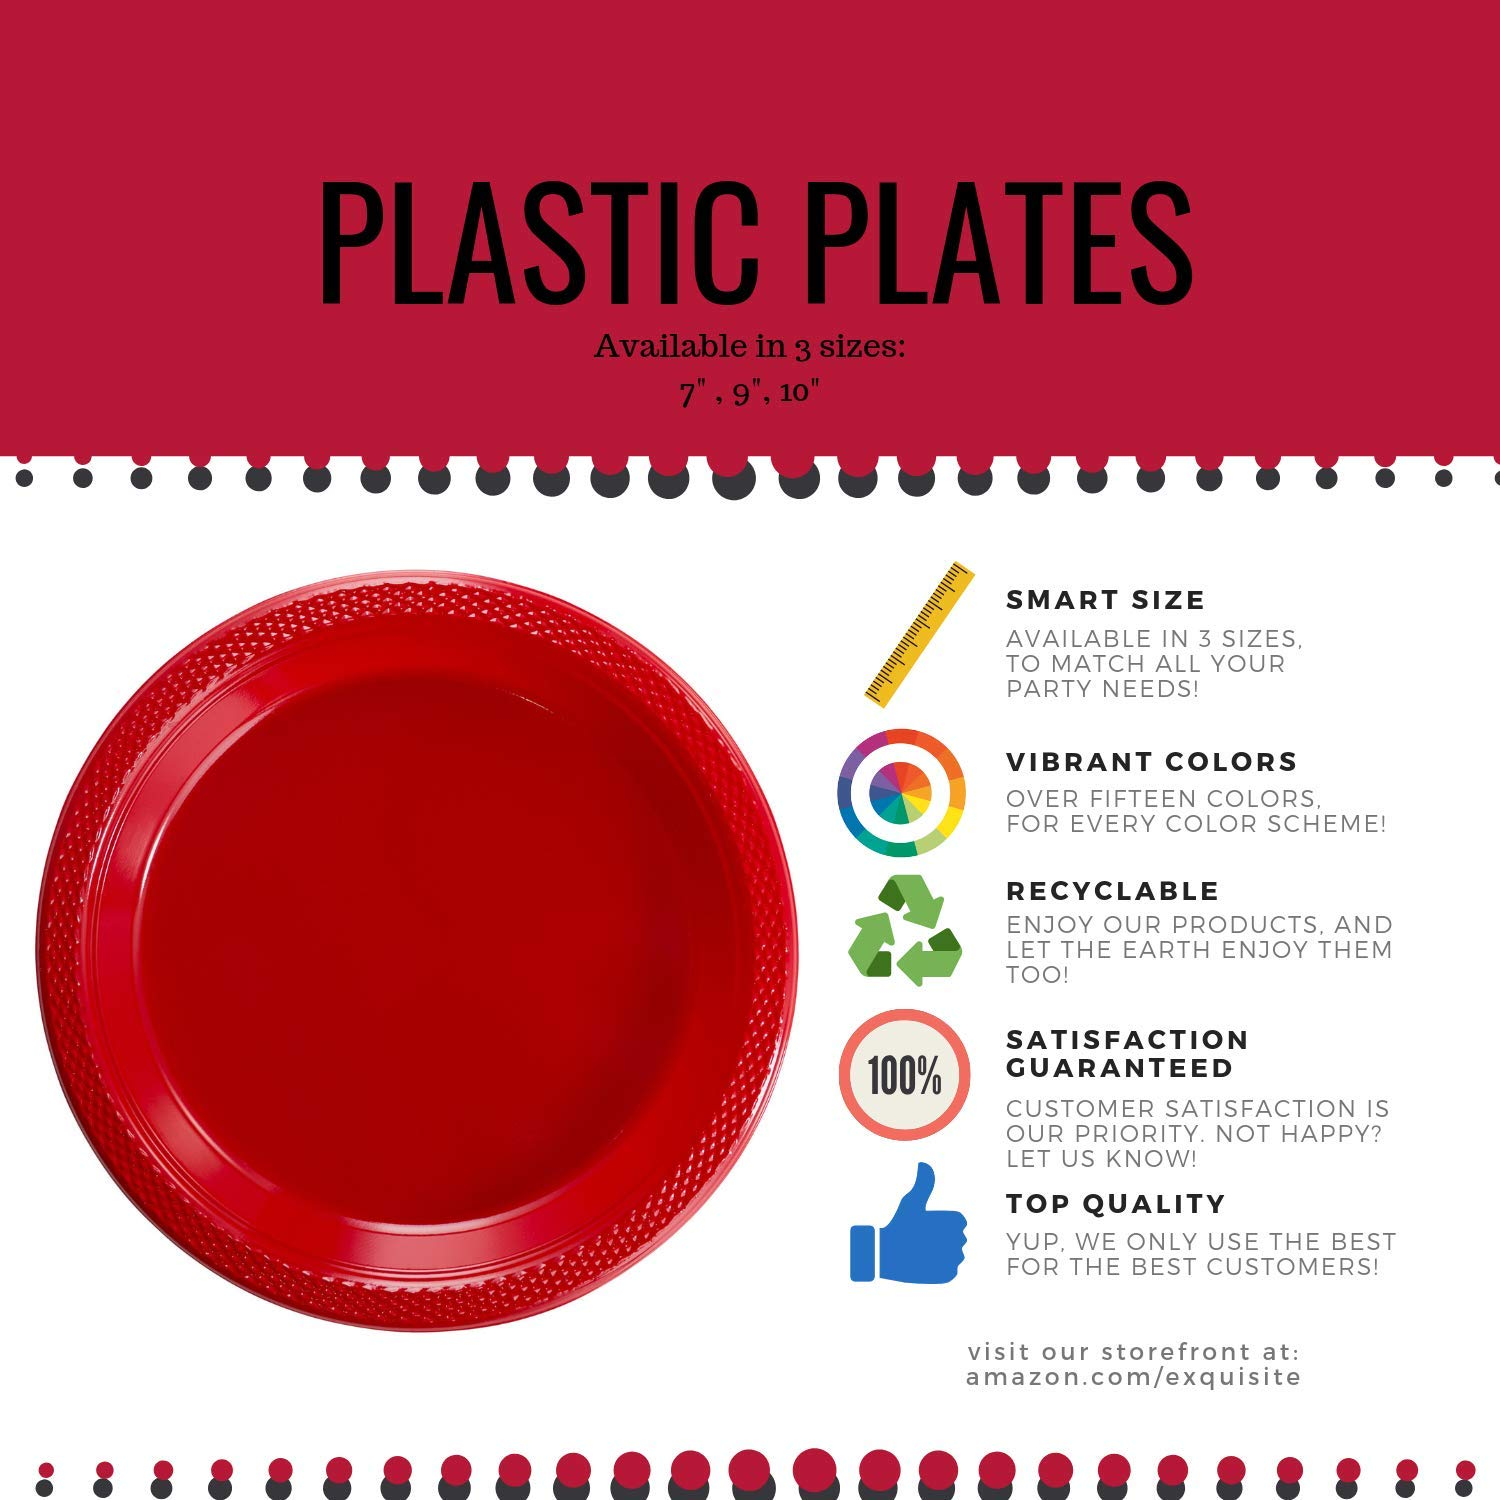 Exquisite Plastic Dessert/Salad Plates - Solid Color Disposable Plates - 100 Count (10 Inch, Clear) by Exquisite (Image #1)